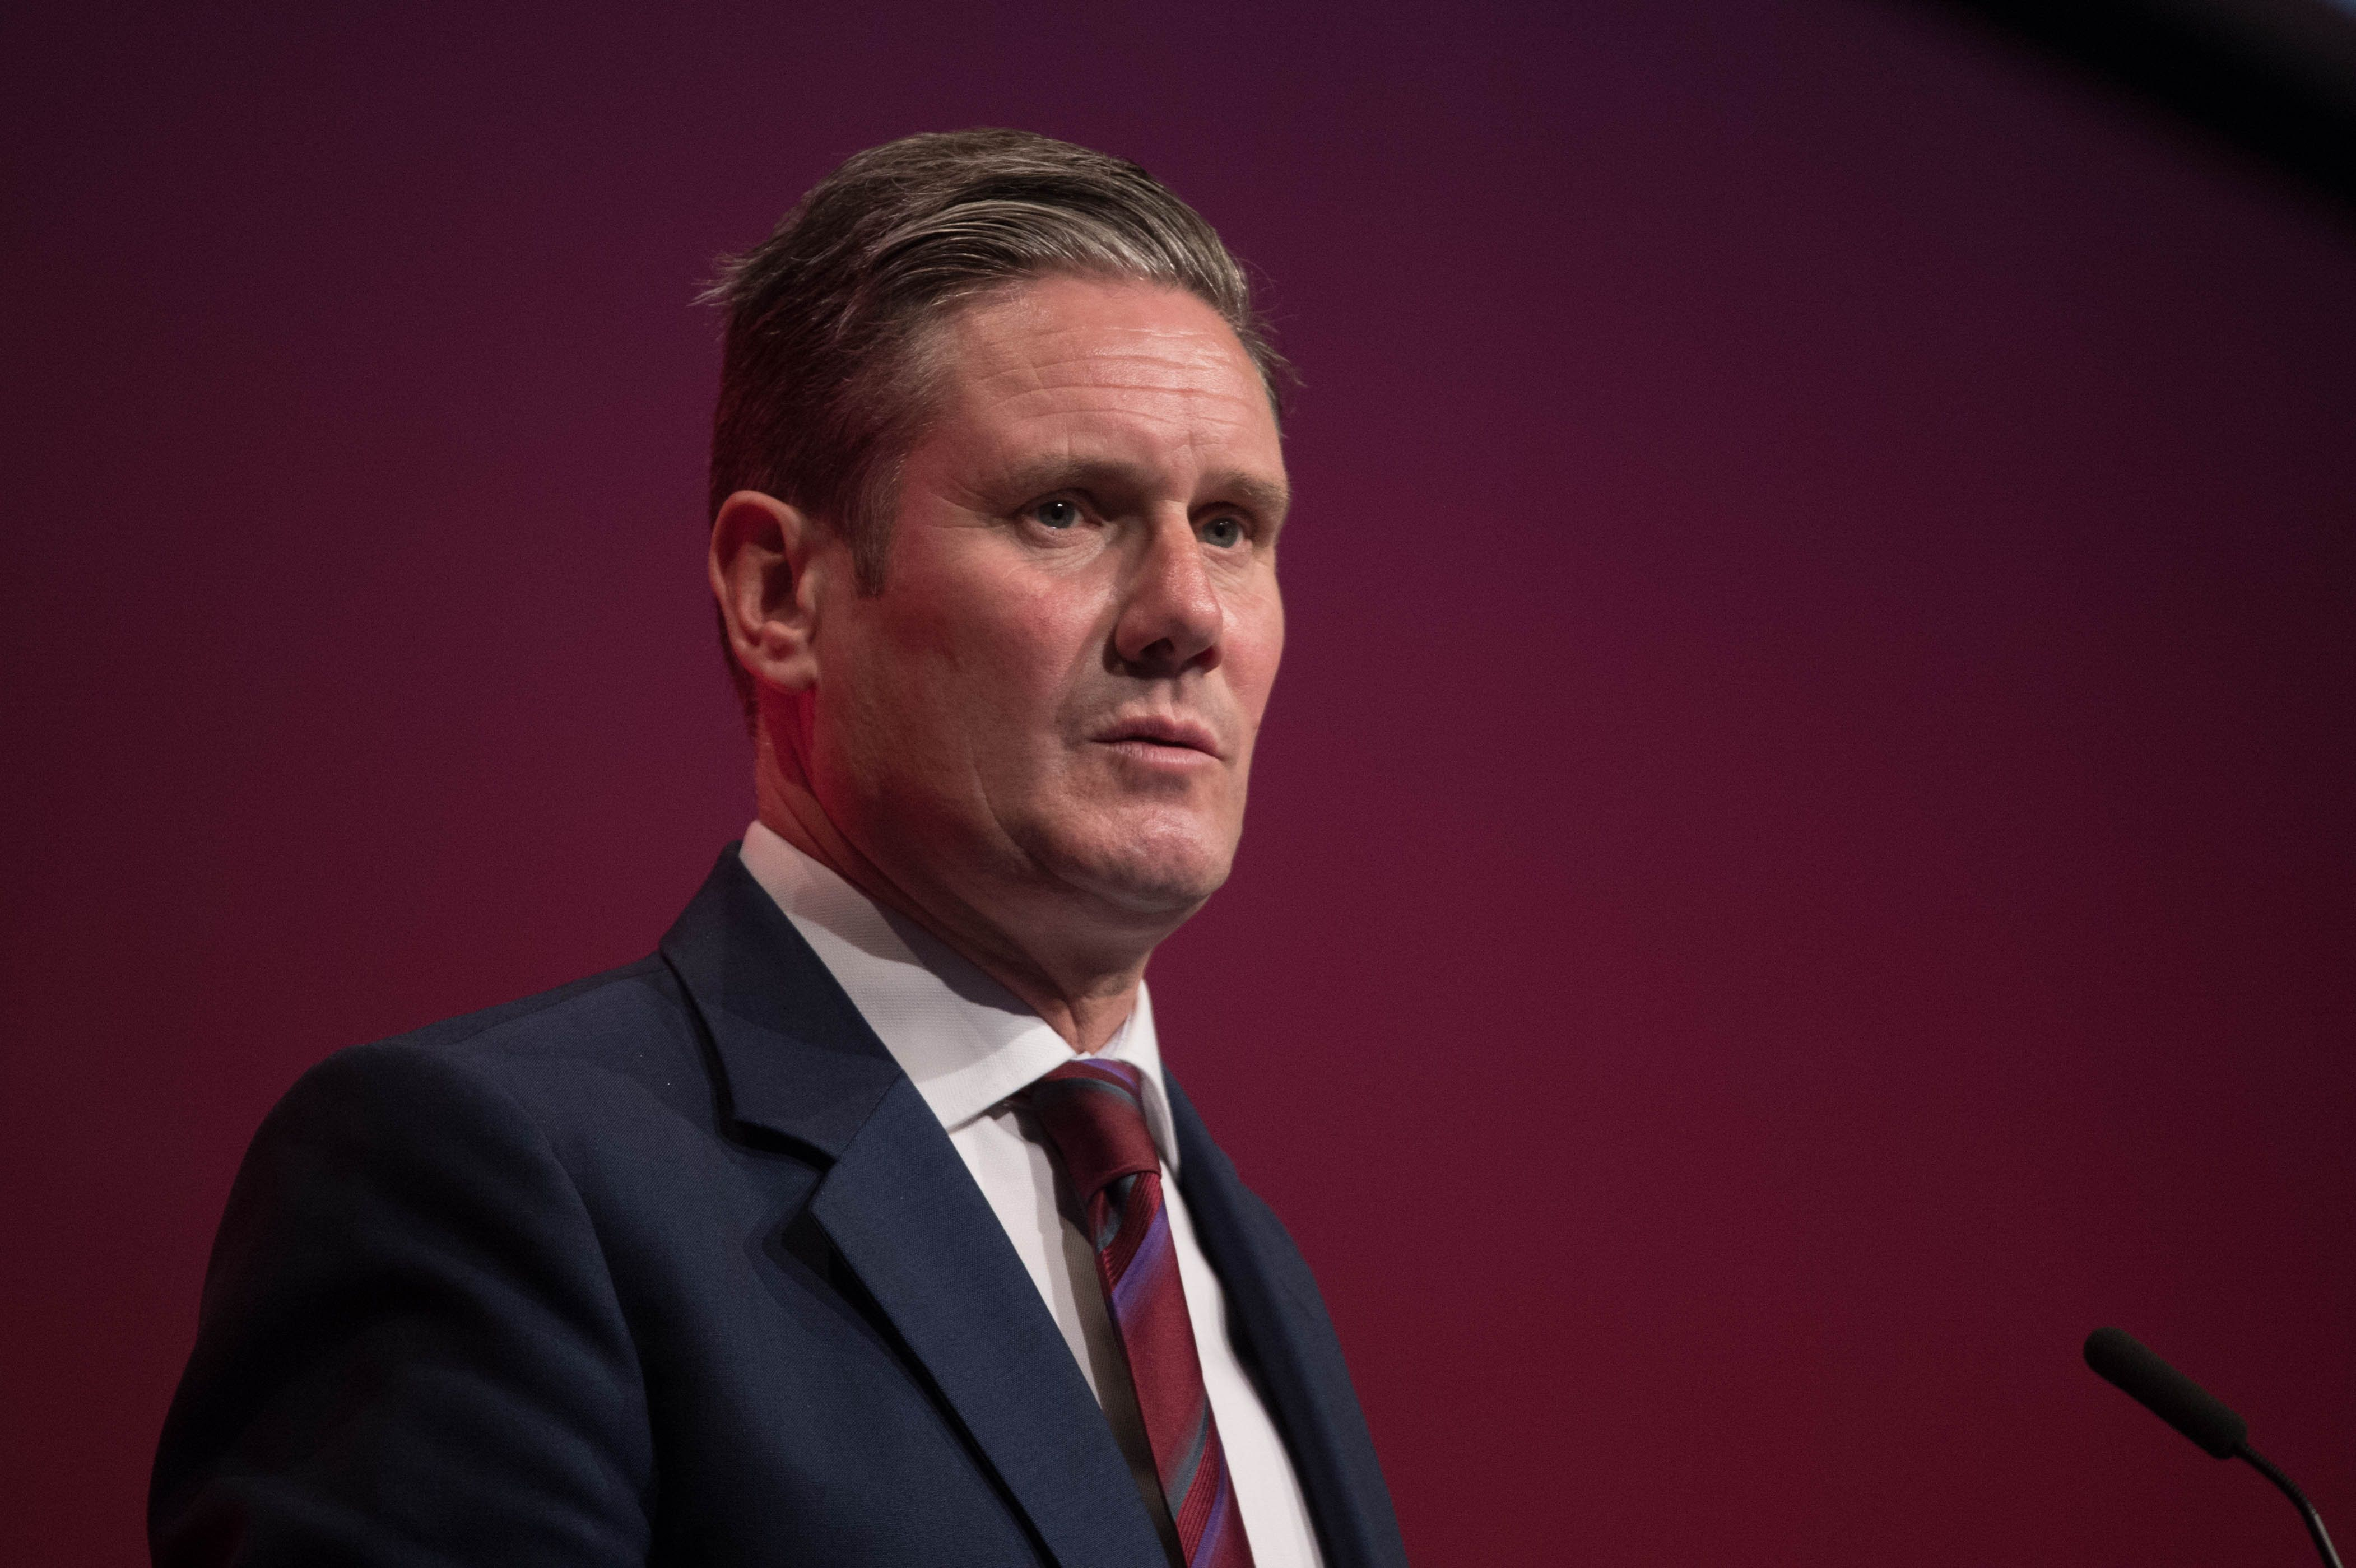 Sir Keir Starmer warned Labour would back Tory rebels if Theresa May did not meet his six